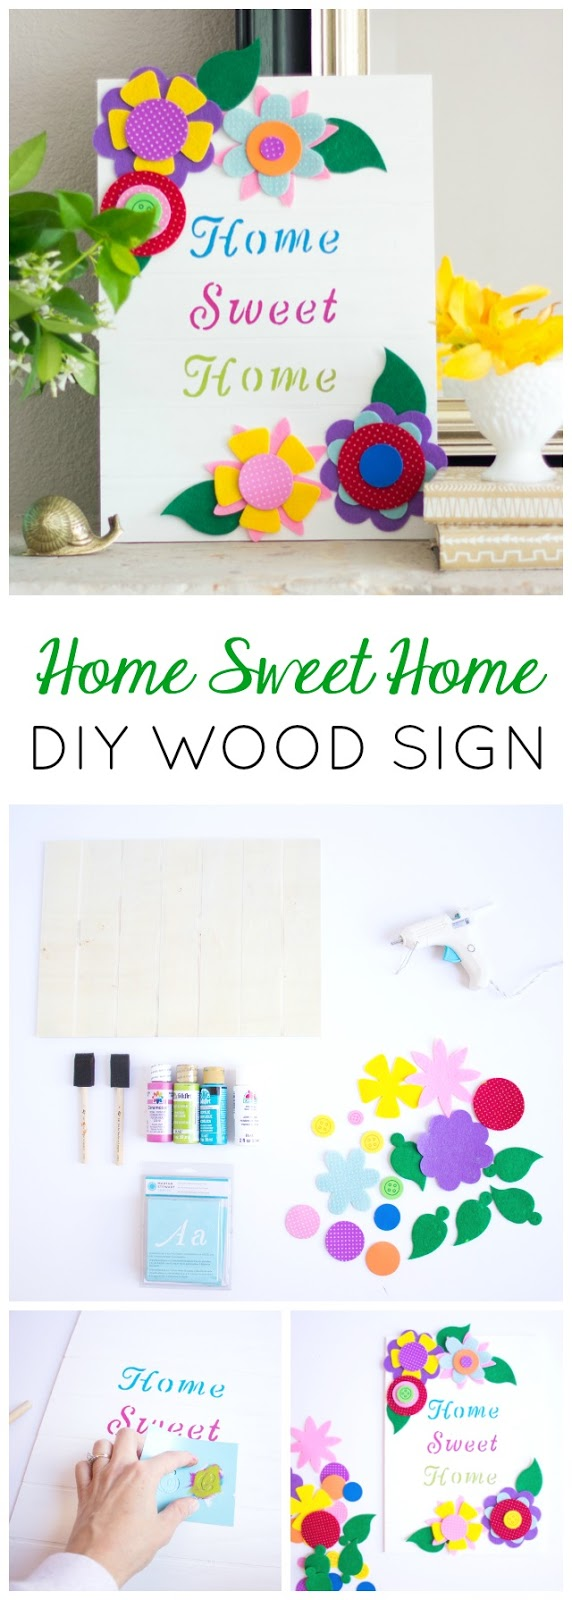 Make this pretty floral wood Home Sweet Home sign for easy DIY decor!